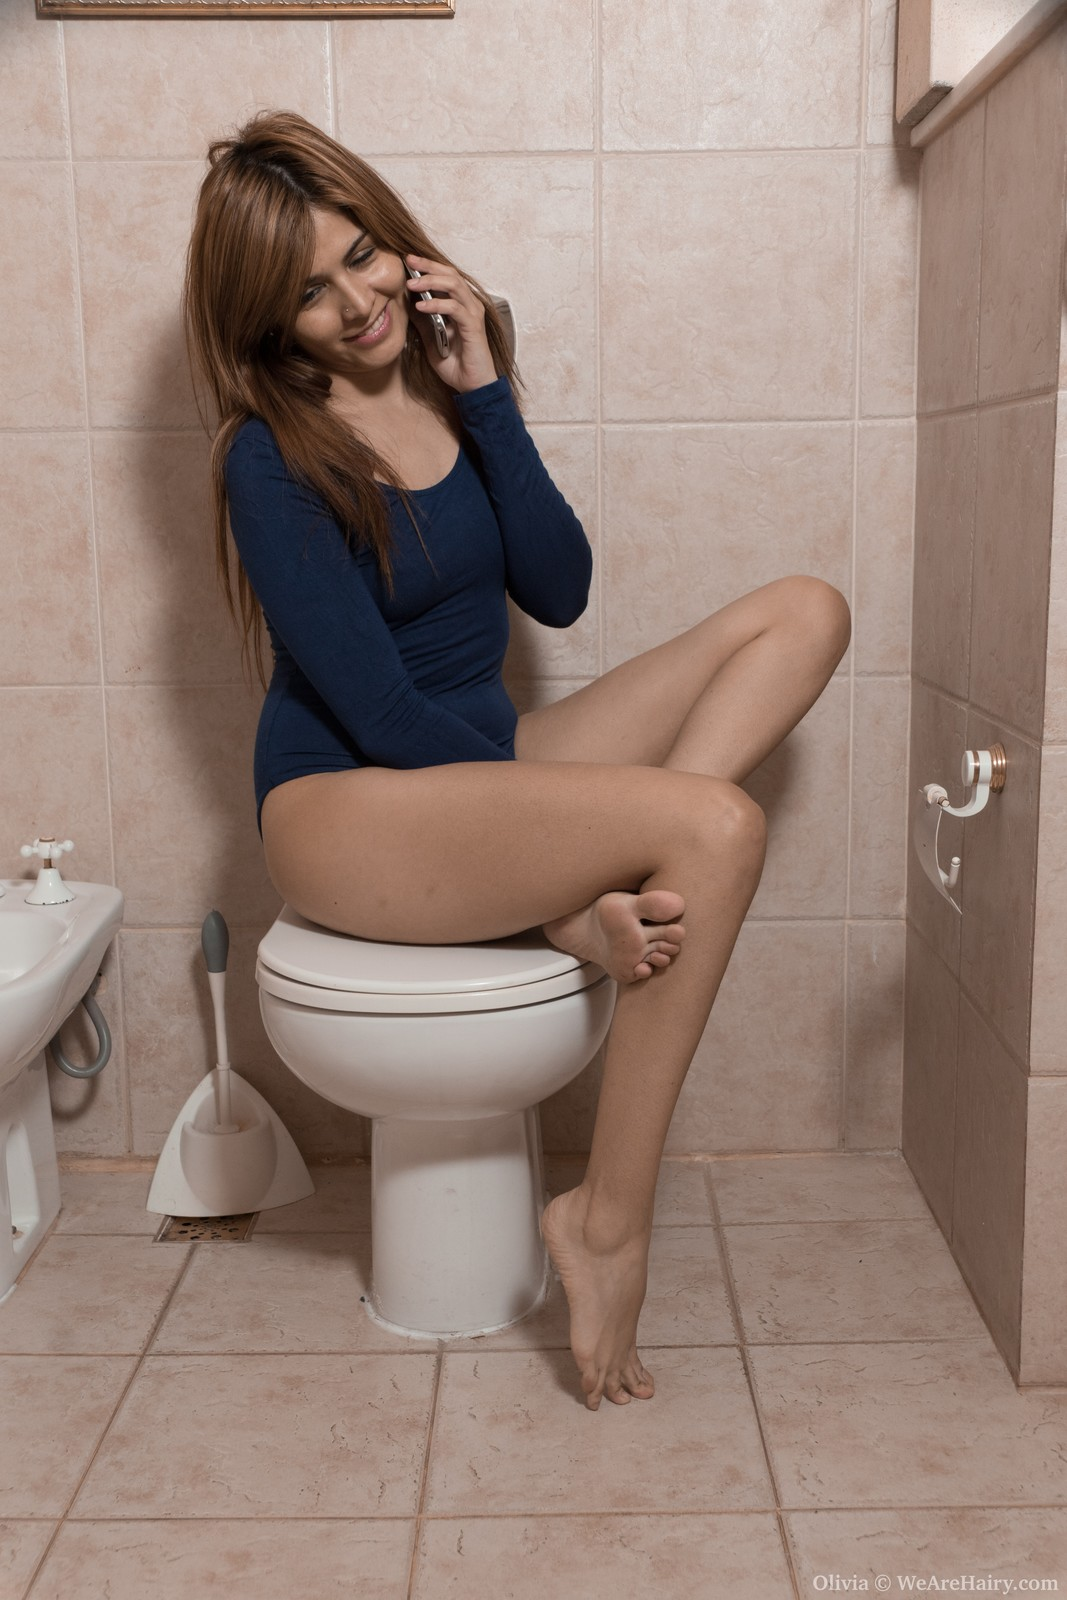 nude women on the toilet